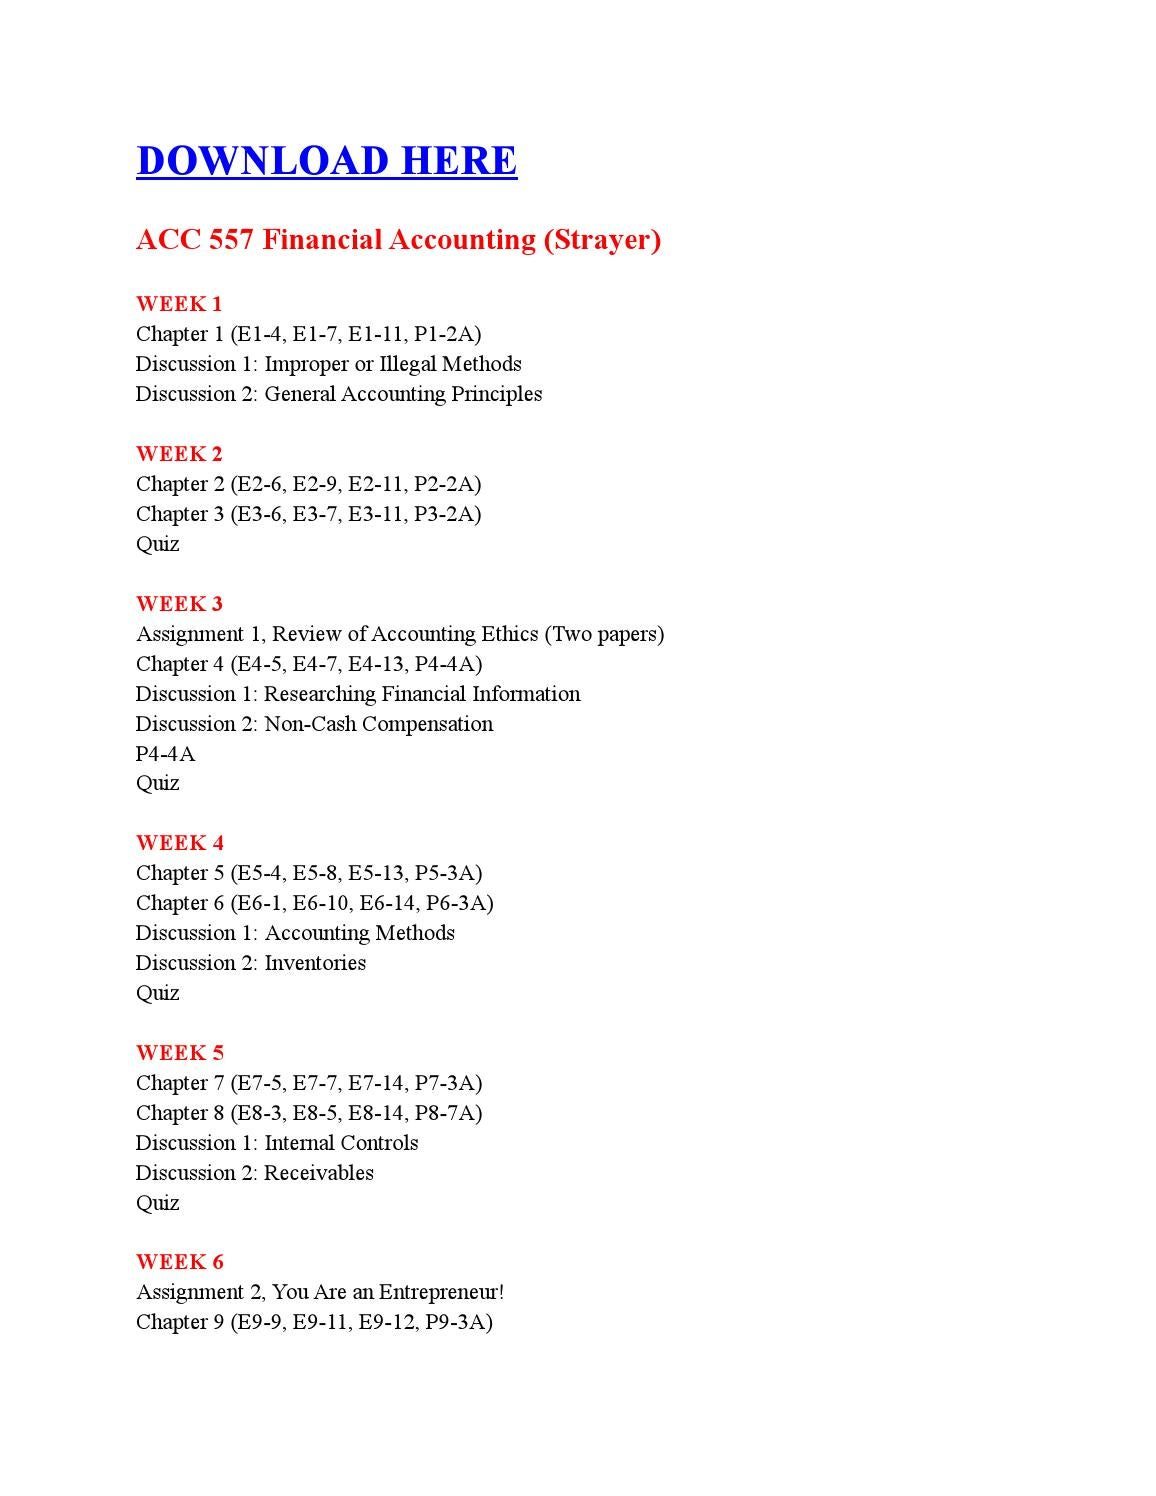 Accounting chapter 1 assignment Coursework Example - August